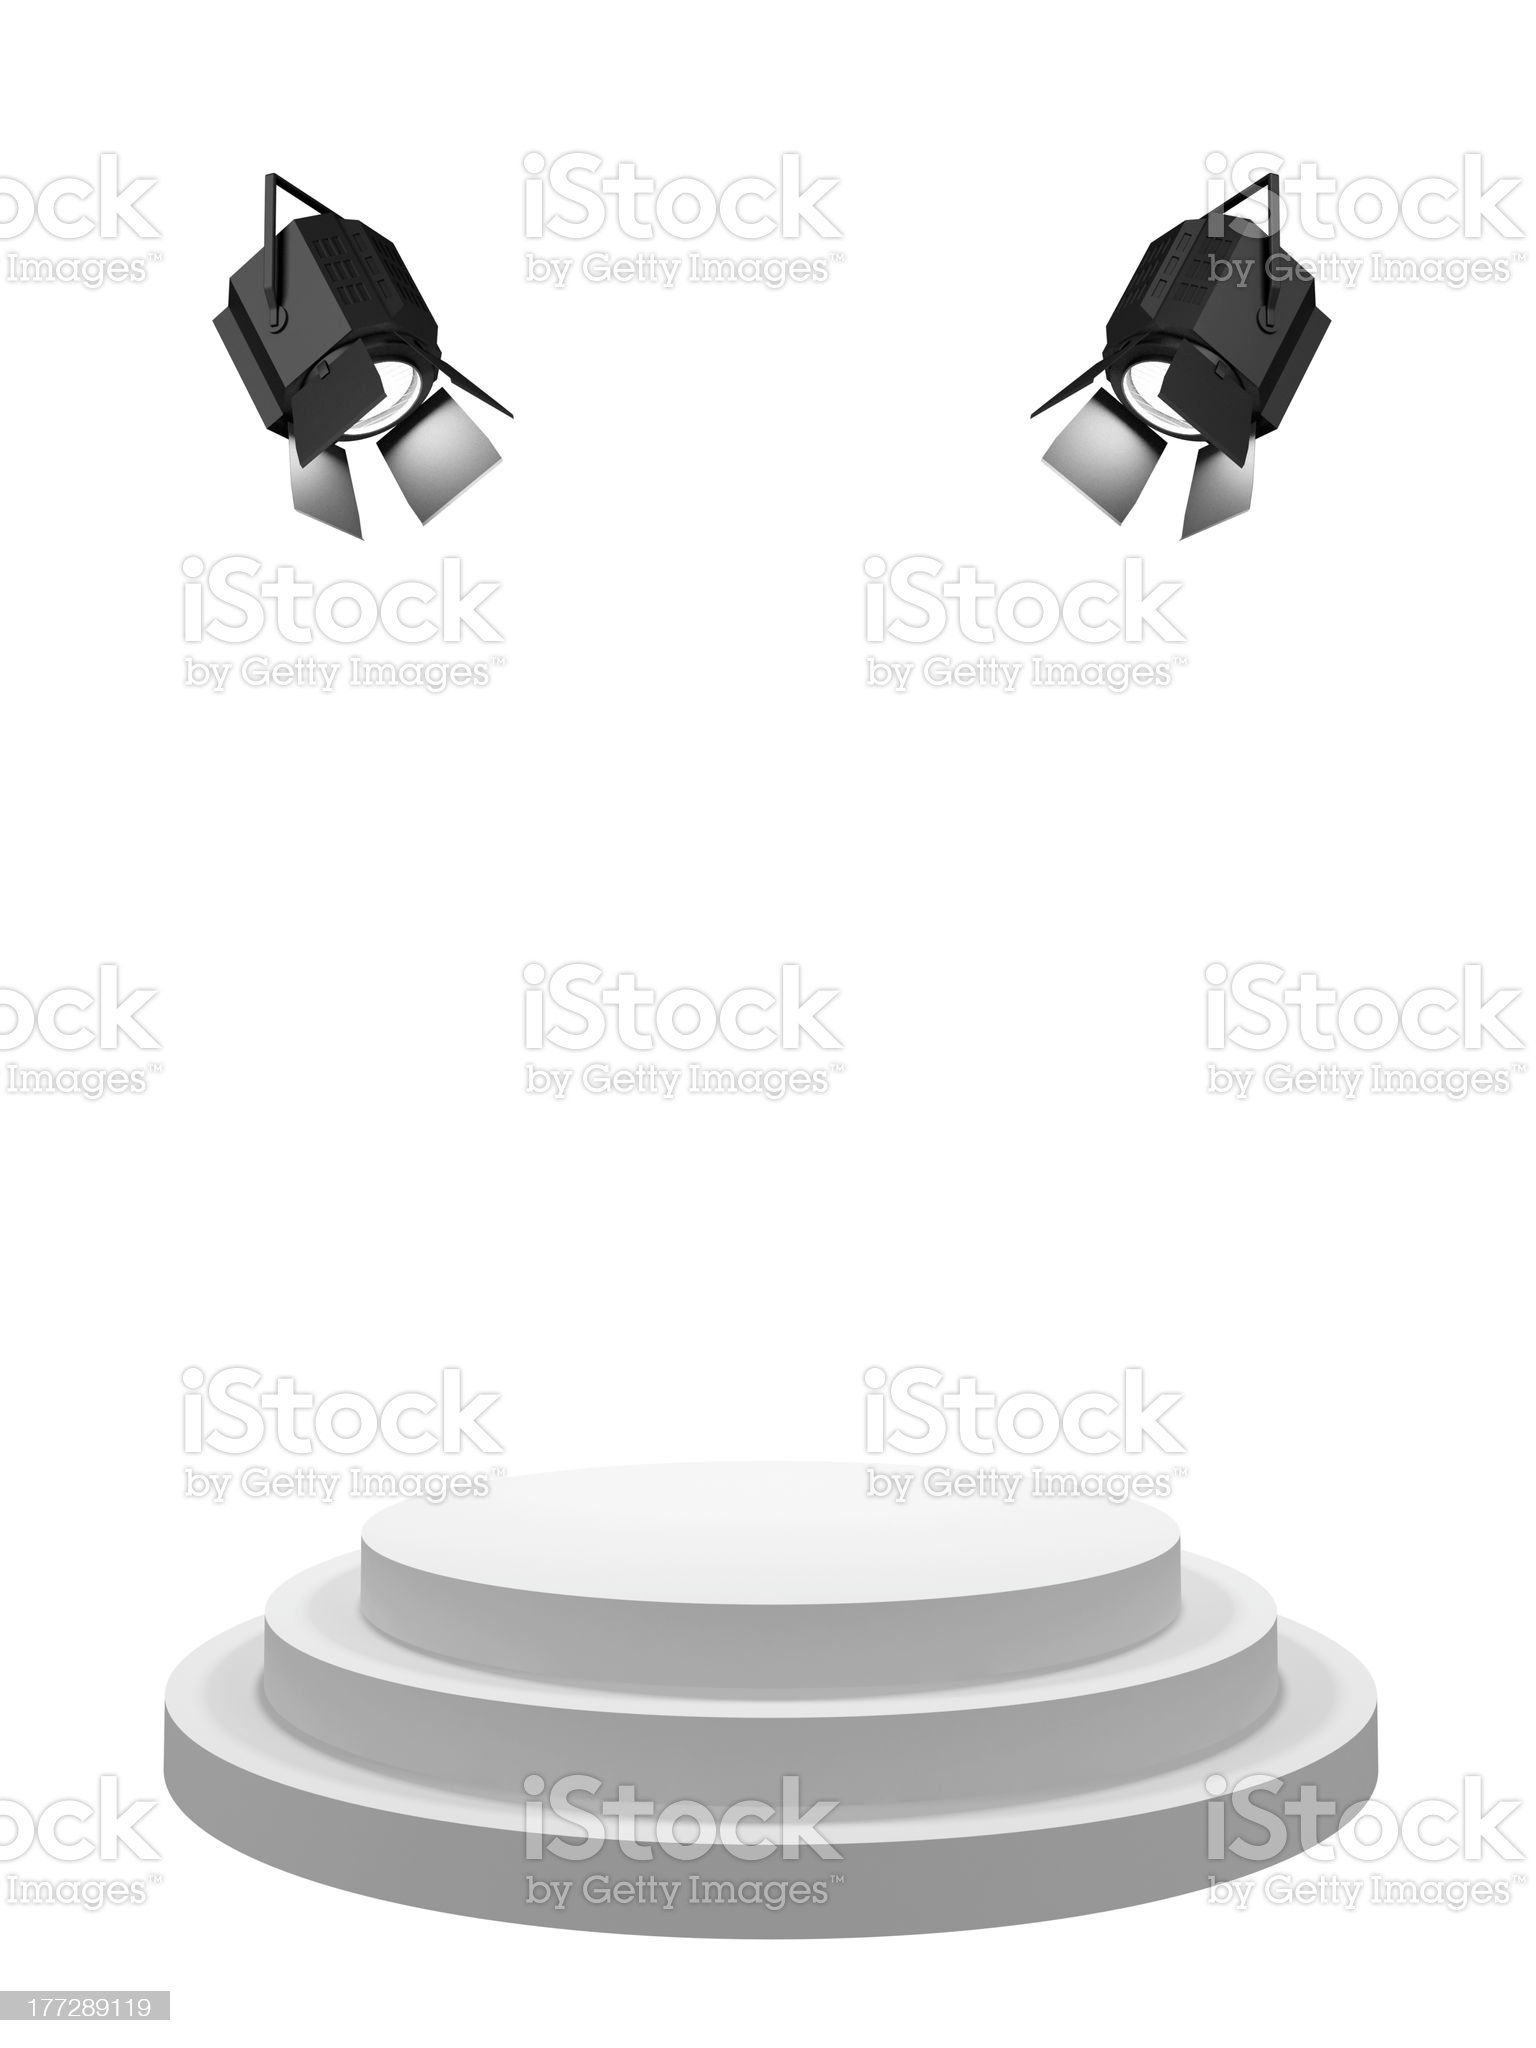 Pedestal with searchlights royalty-free stock photo